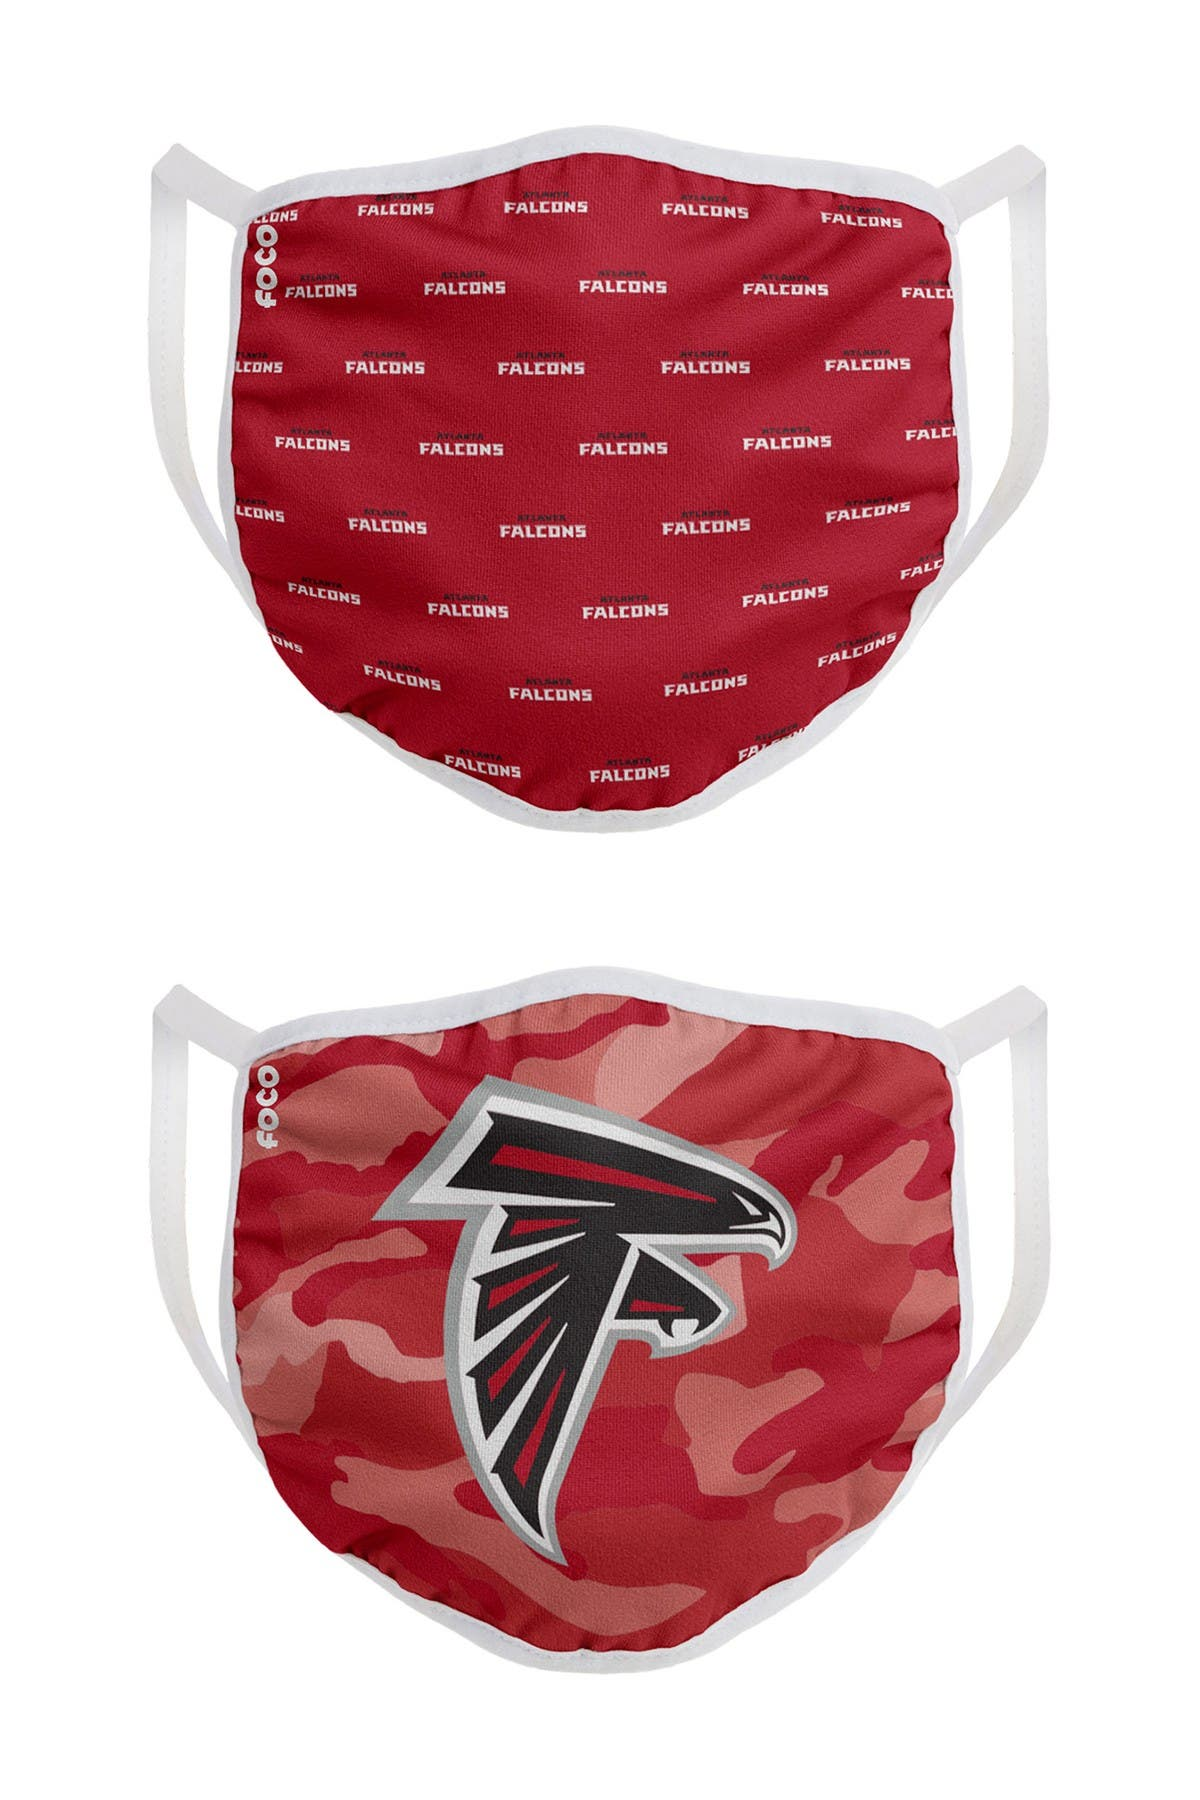 Image of FOCO NFL Atlanta Falcons Clutch Printed Face Cover - Pack of 2